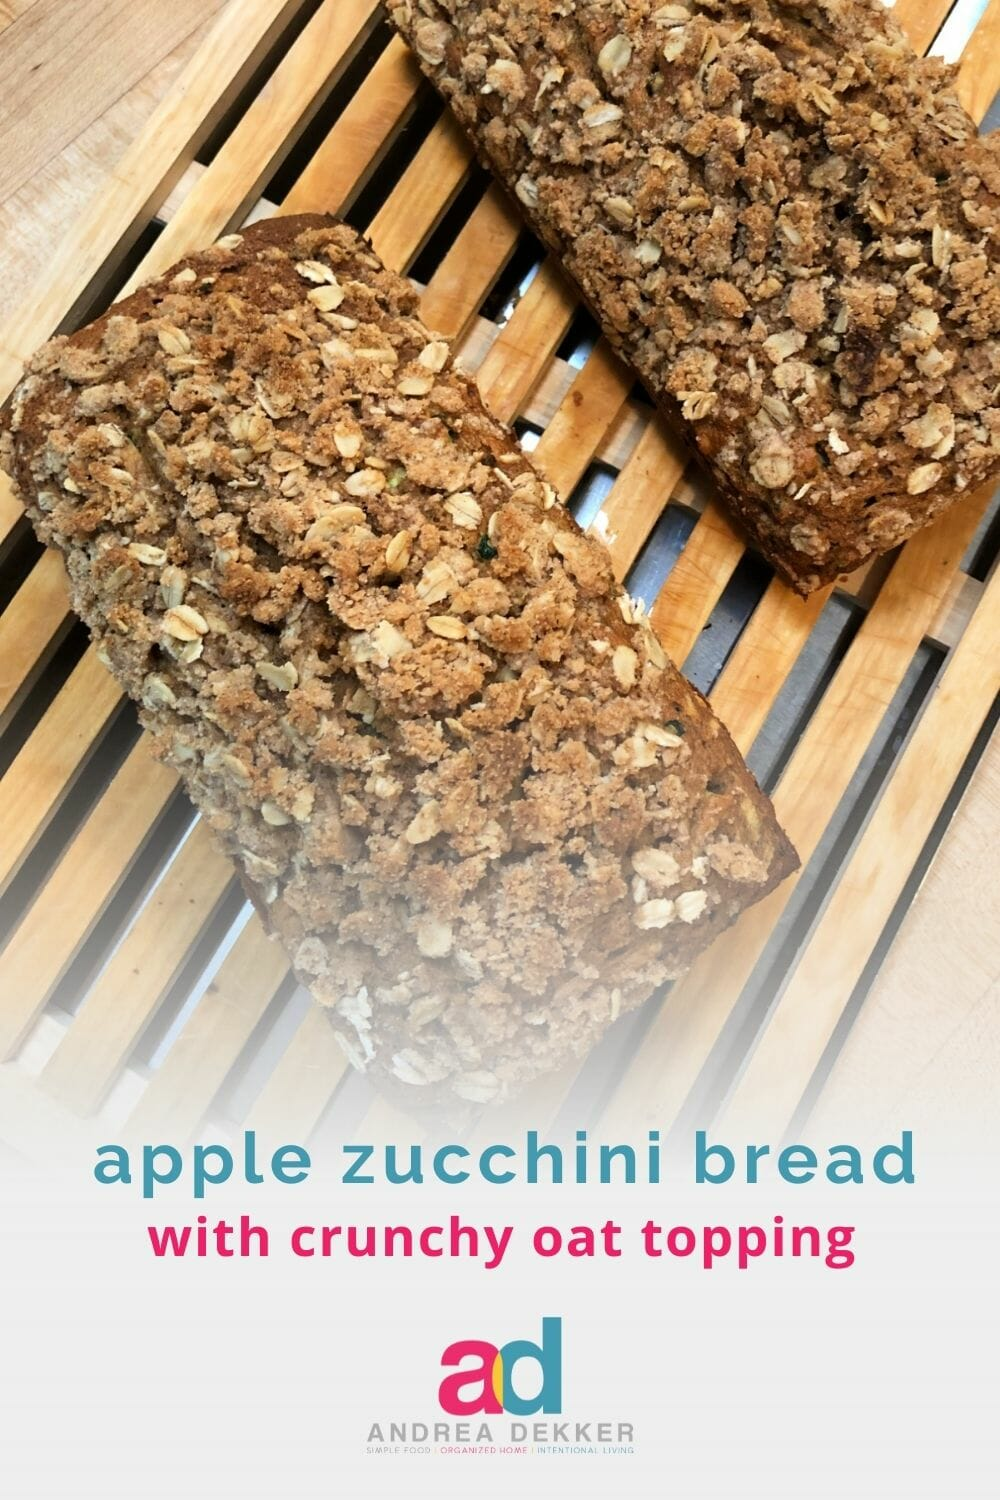 When the summer zucchini season overlaps the early apple crop here in West Michigan, I know it's time for a loaf (or 6) of our favorite Apple Cinnamon Zucchini Bread. via @andreadekker